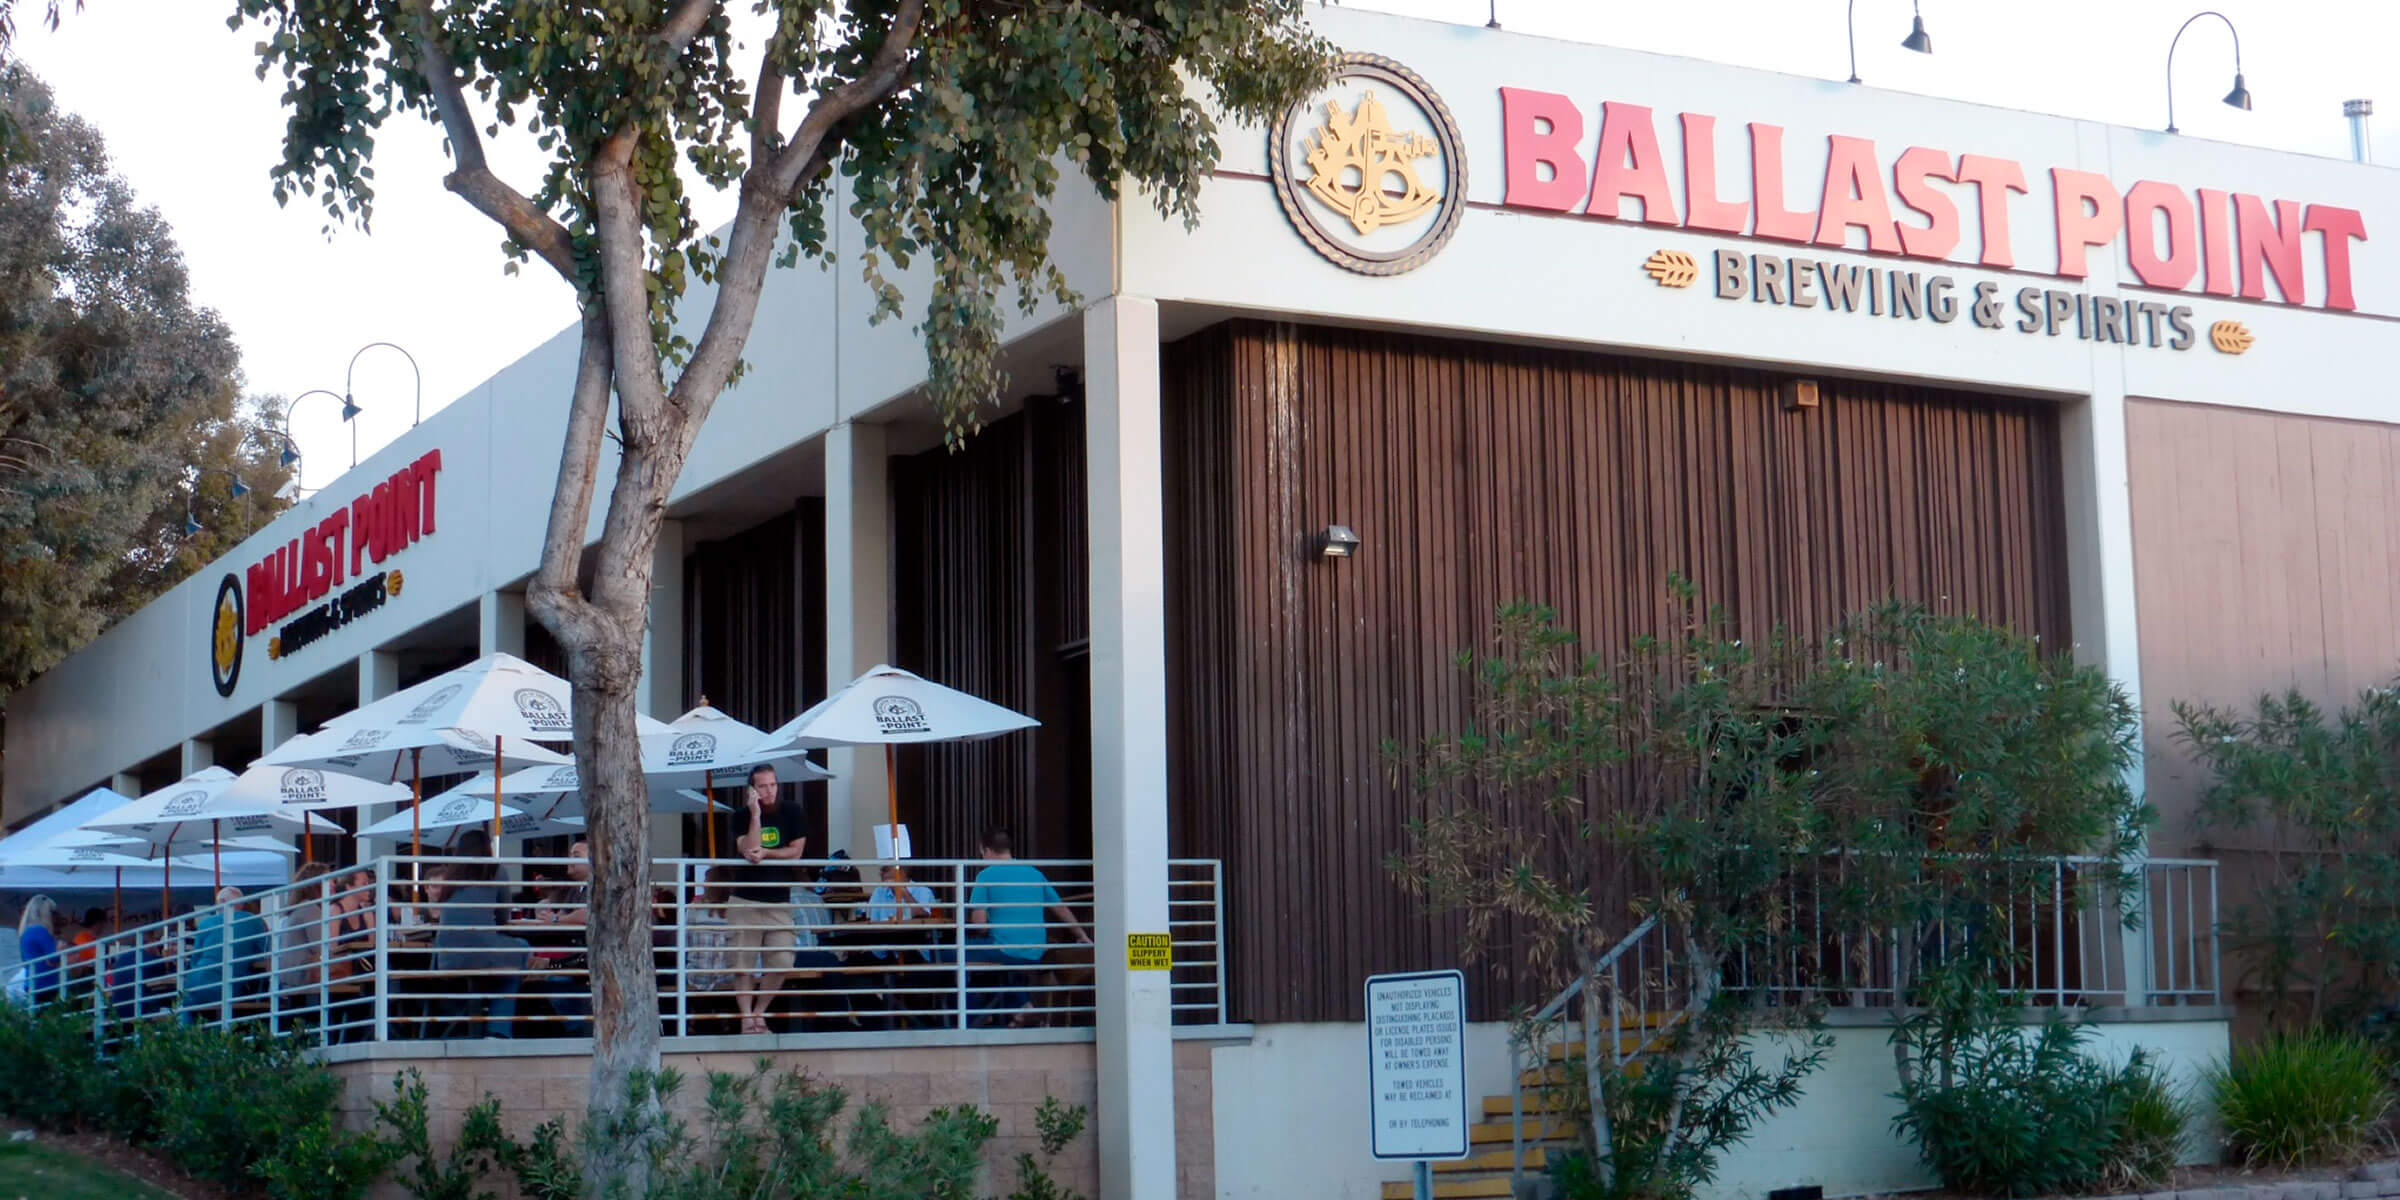 Outside the Ballast Point Brewing Company Taproom in San Diego, California